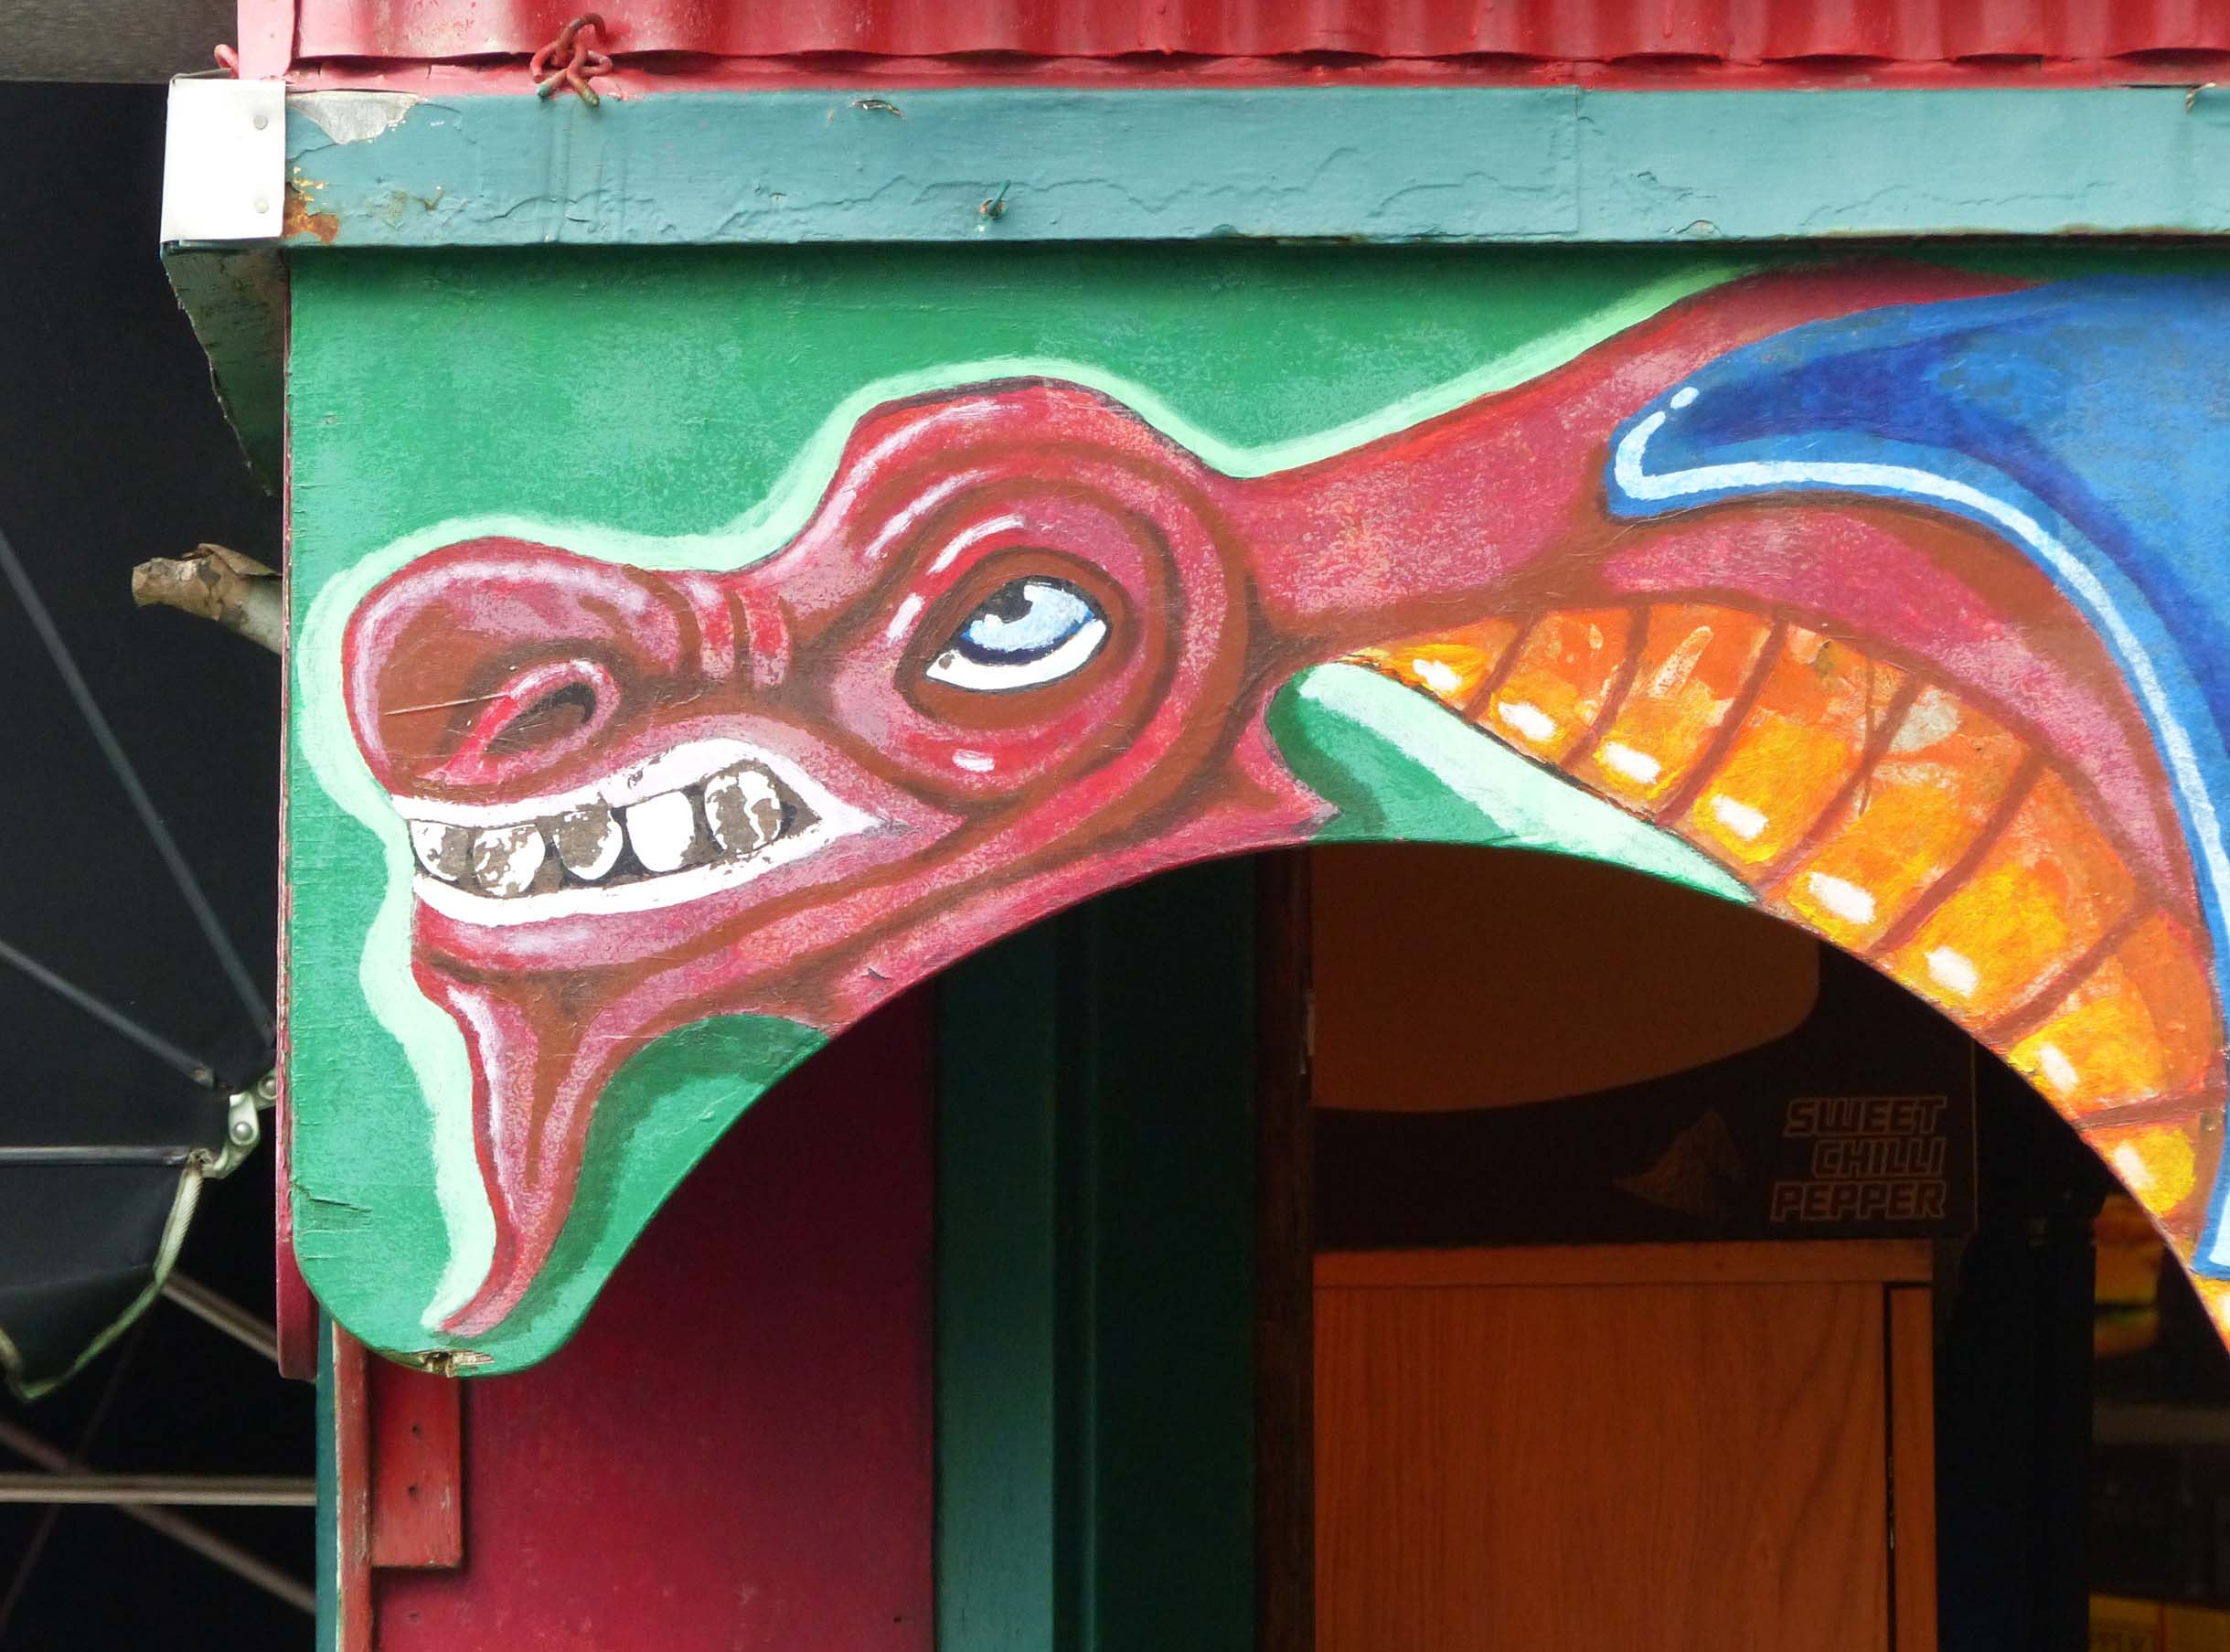 Archway with red dragon painted above